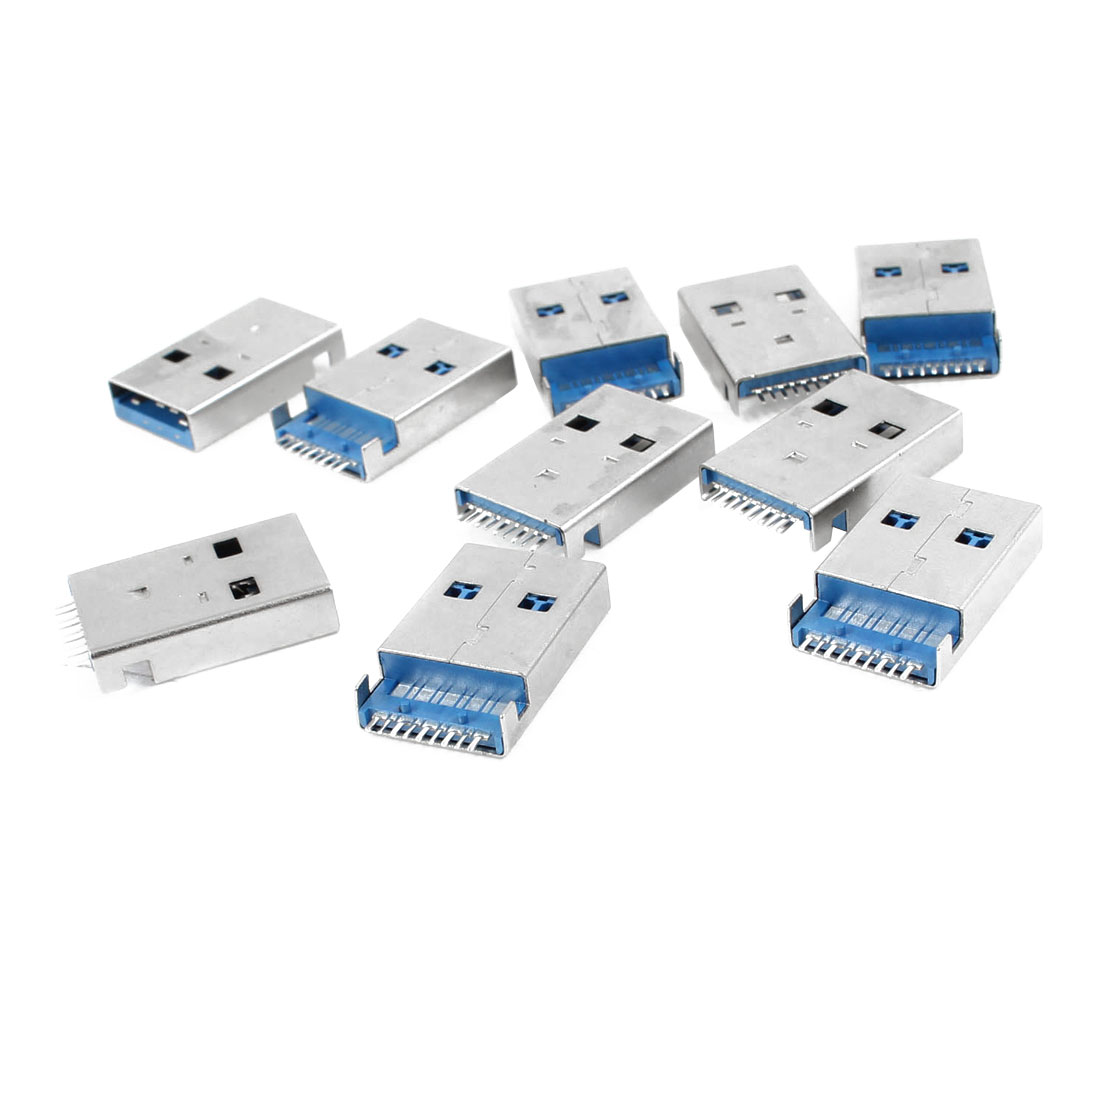 10 Pcs Shielded 180 Degree 9 Pin USB 3.0 Type A Male Jack Plug